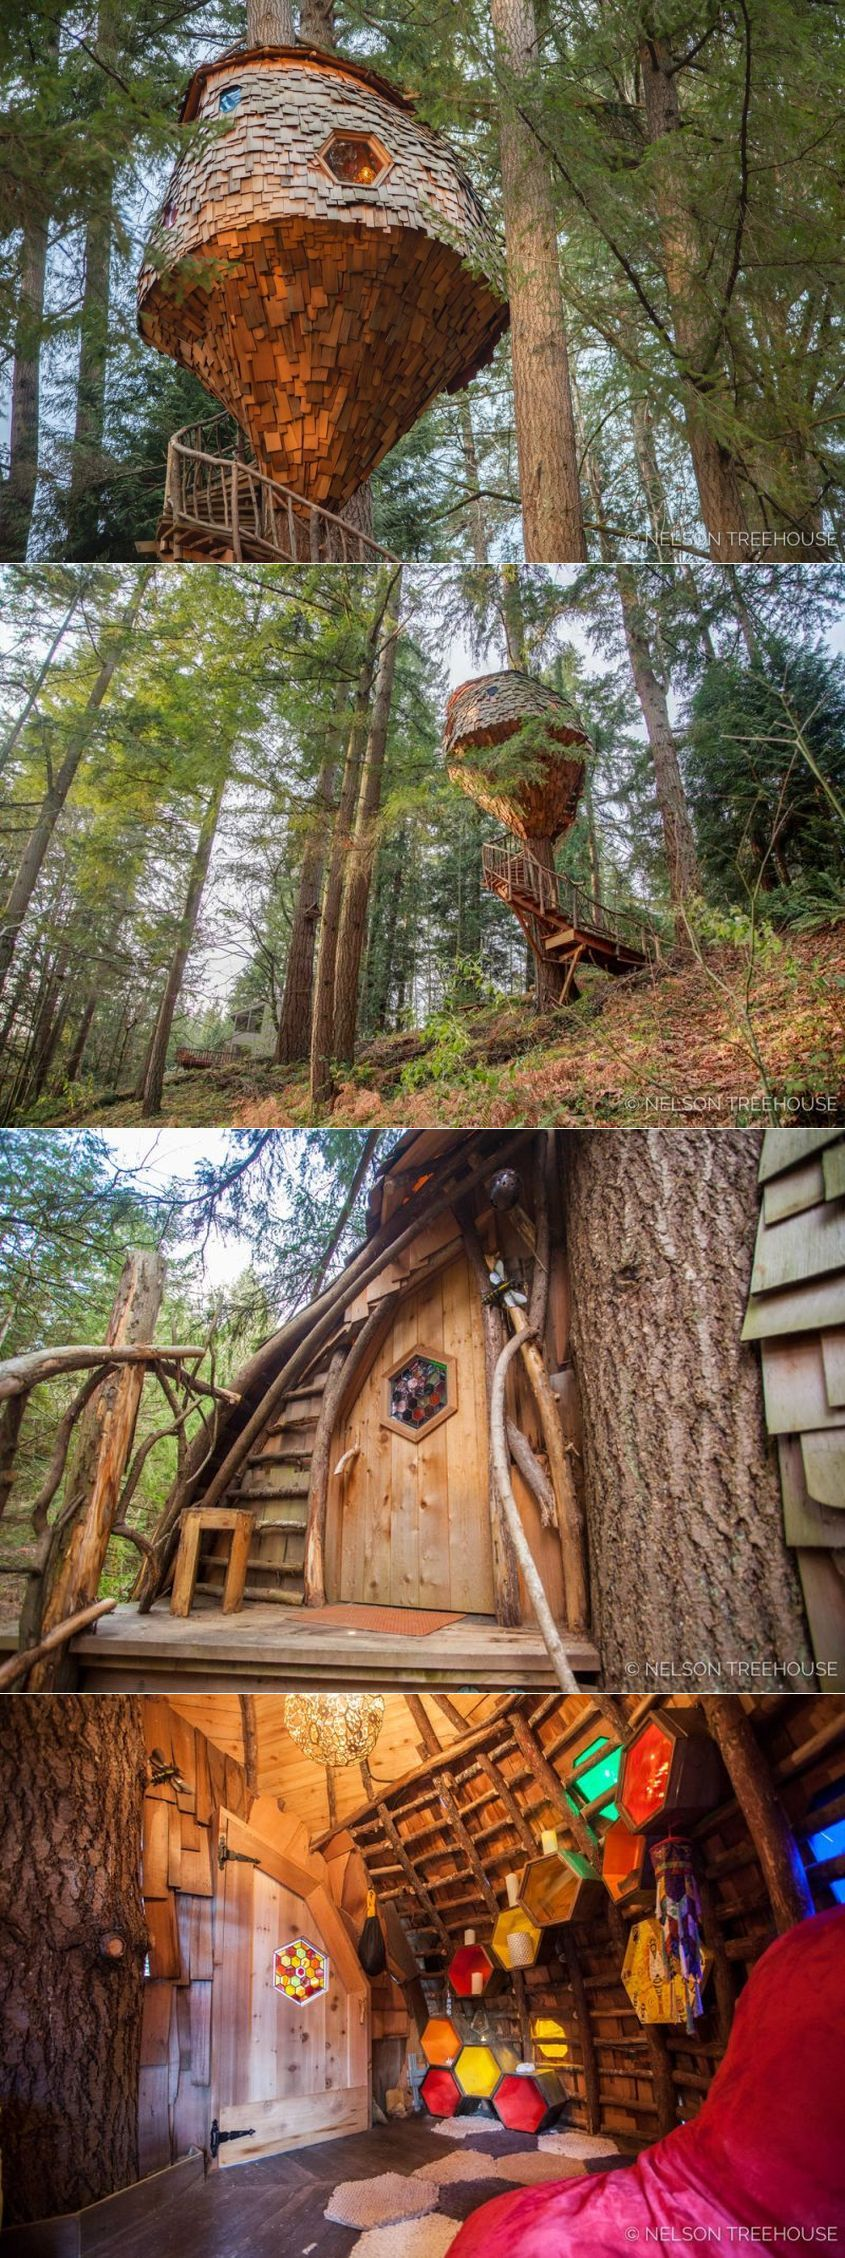 Beehive Treehouse by Pete Nelson is a Whimsical Masterpiece! #treehouse #treehousehotel #treehouseresort #getaway